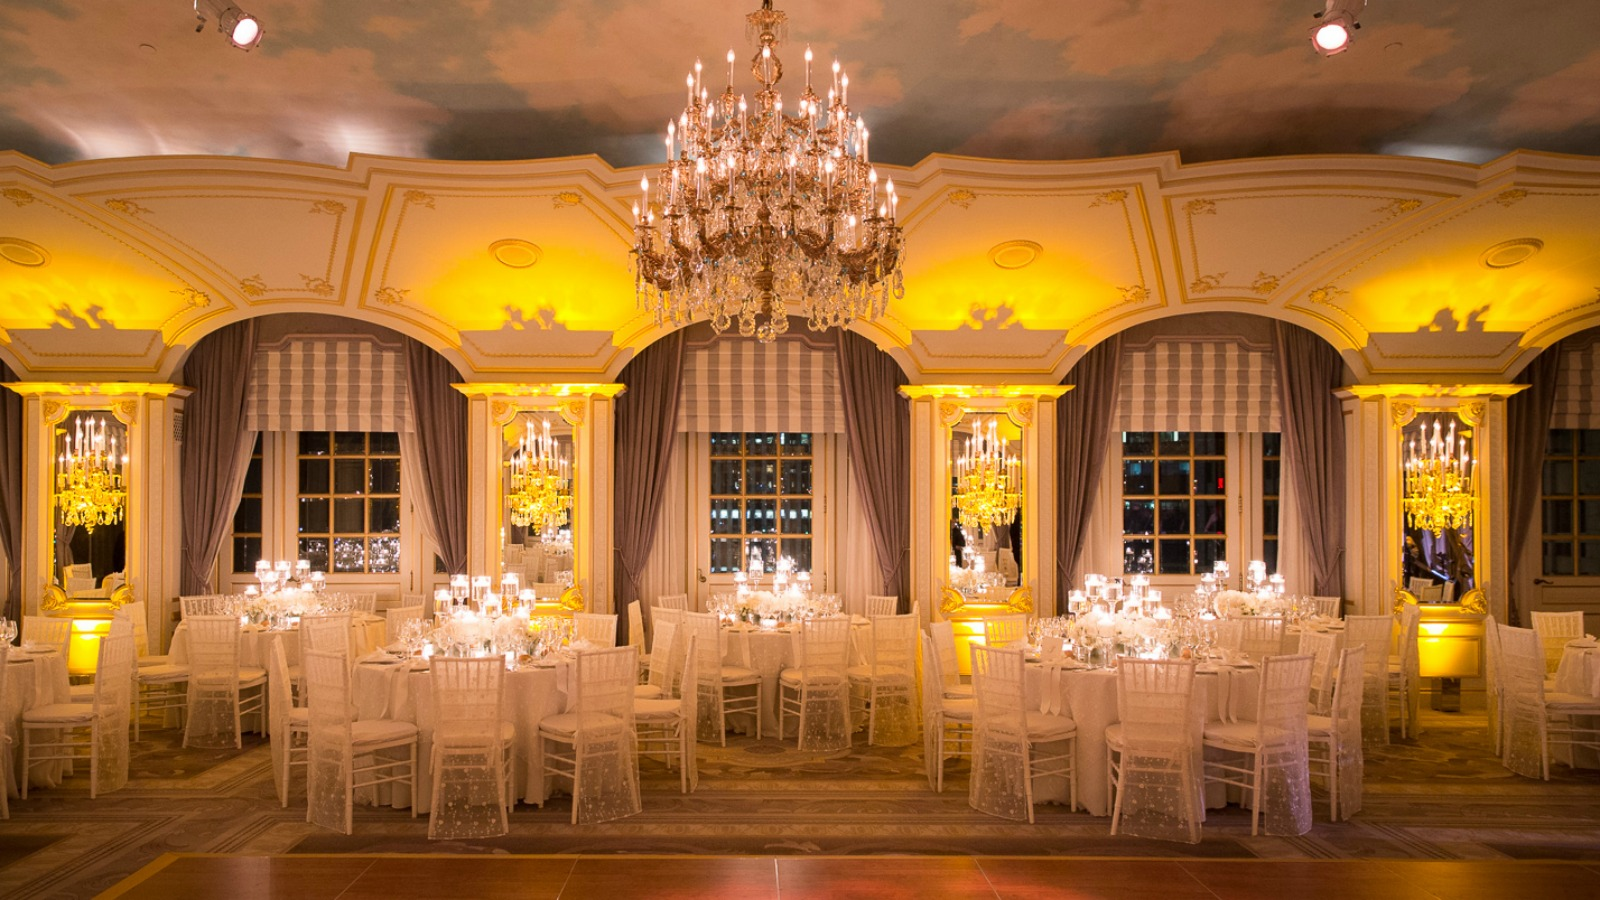 Wedding venues manhattan nyc the st regis new york nyc wedding venues the st regis new york wedding junglespirit Choice Image